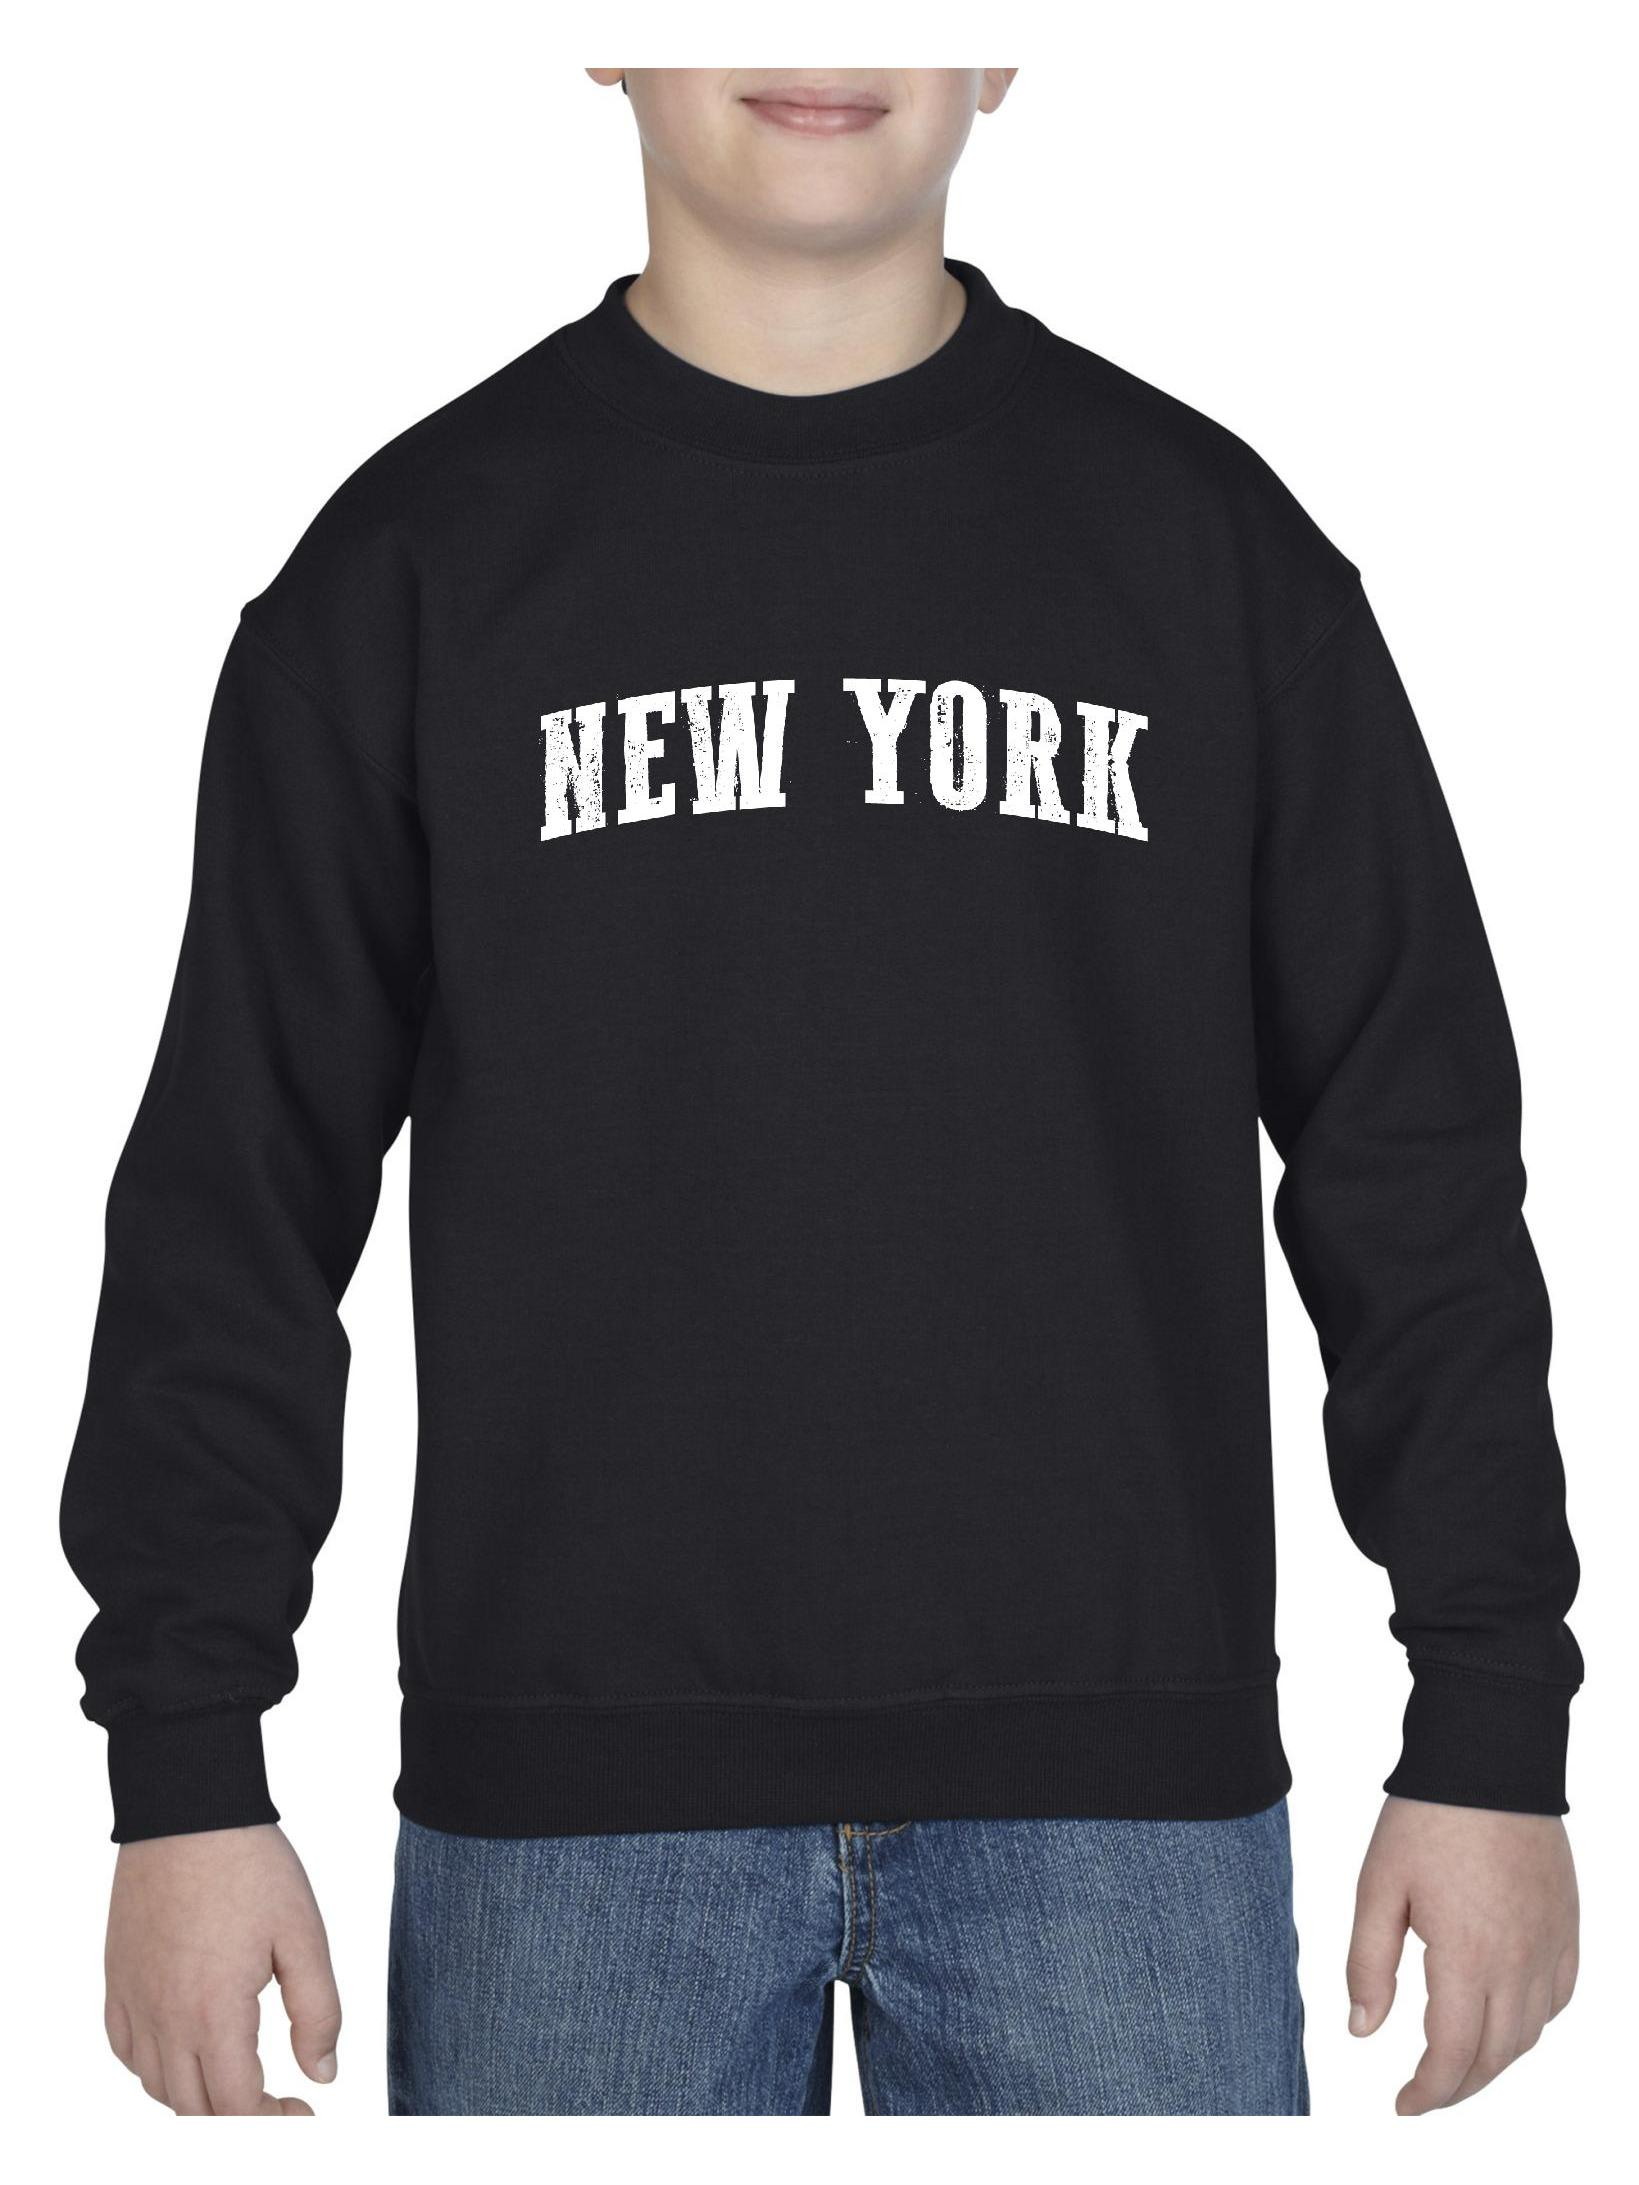 New York City Unisex Youth Crewneck Sweatshirt